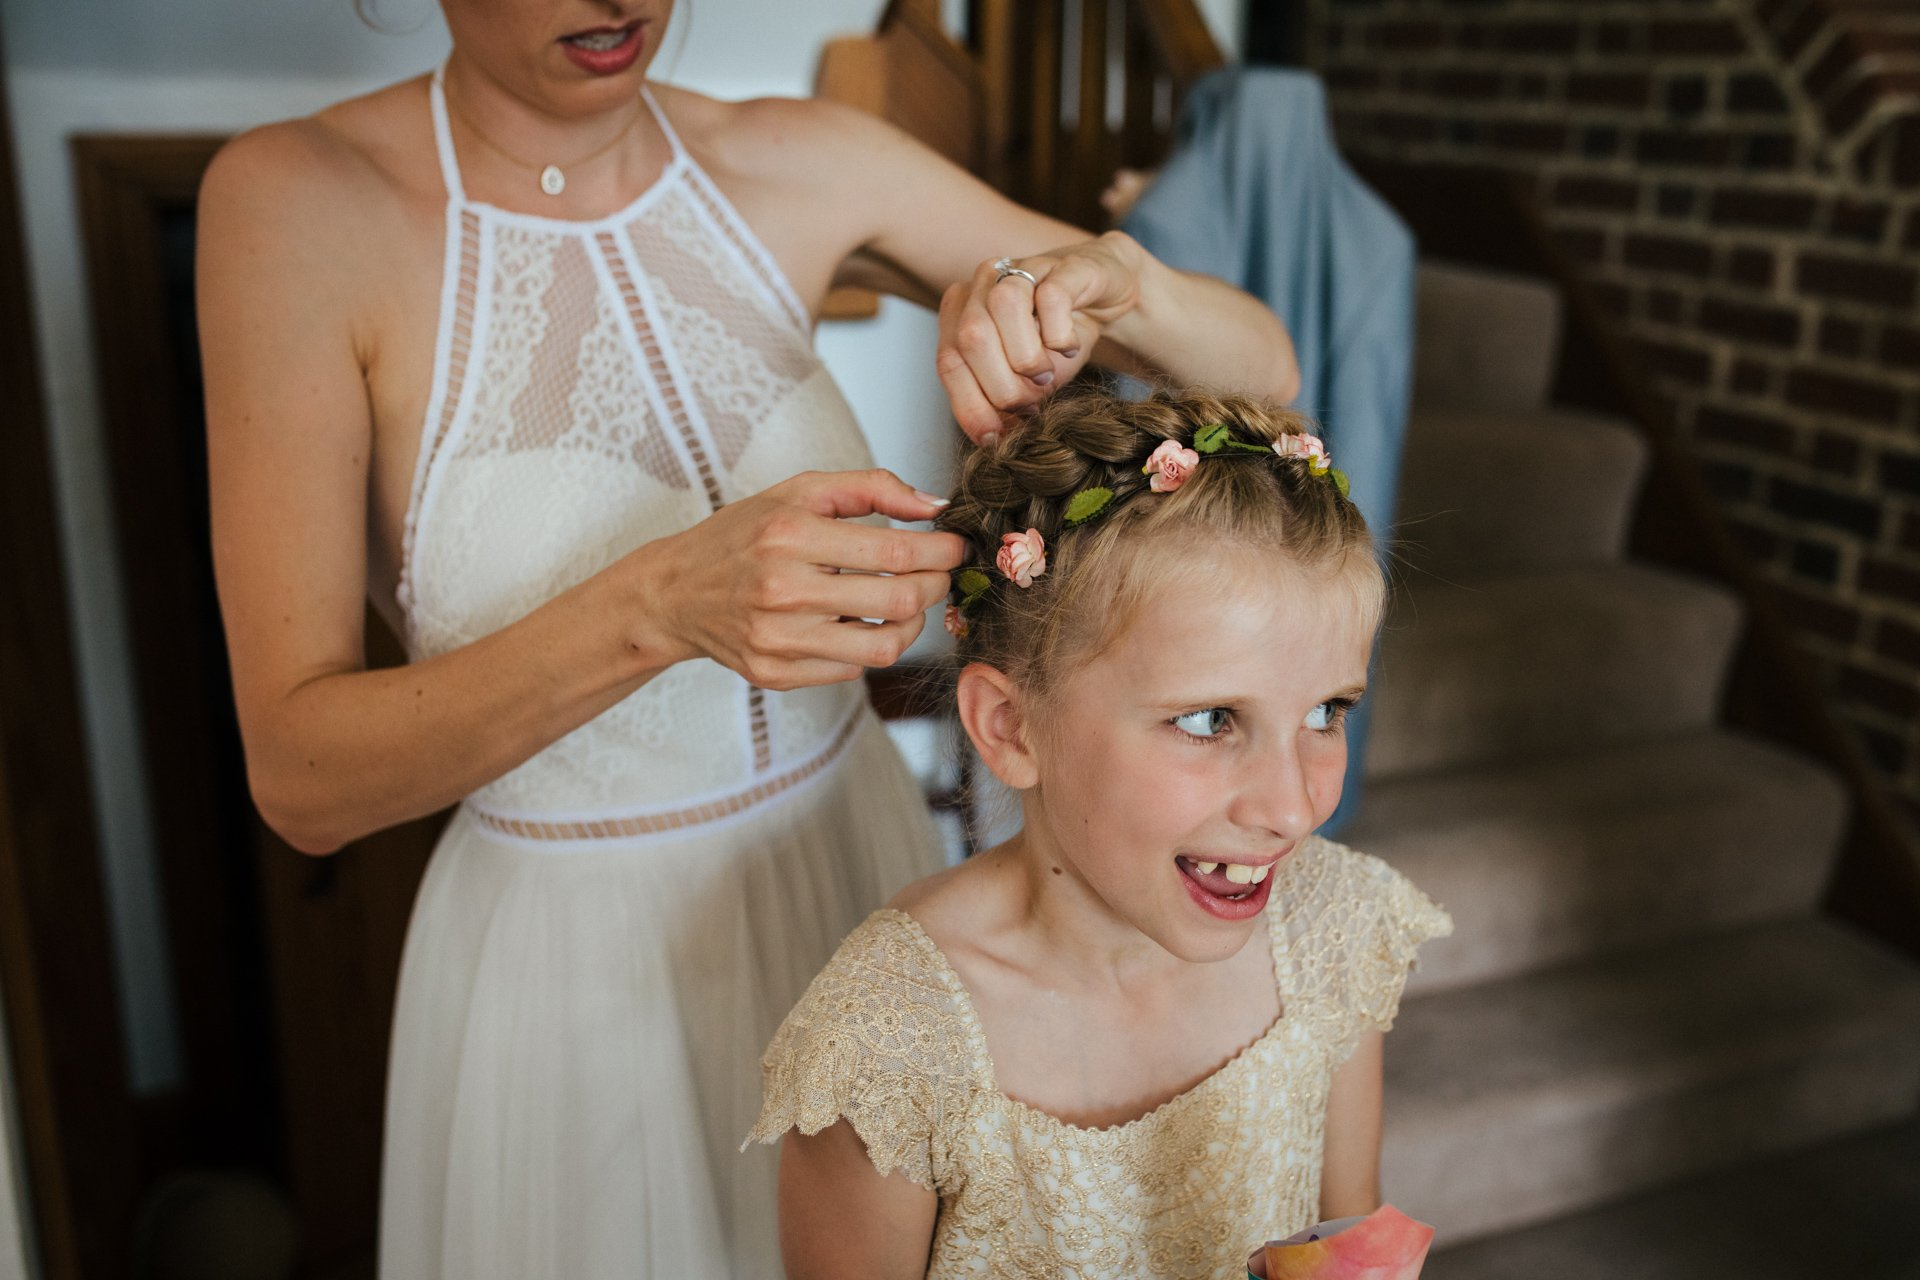 Bridesmaid having her hair pinned up before wedding ceremony